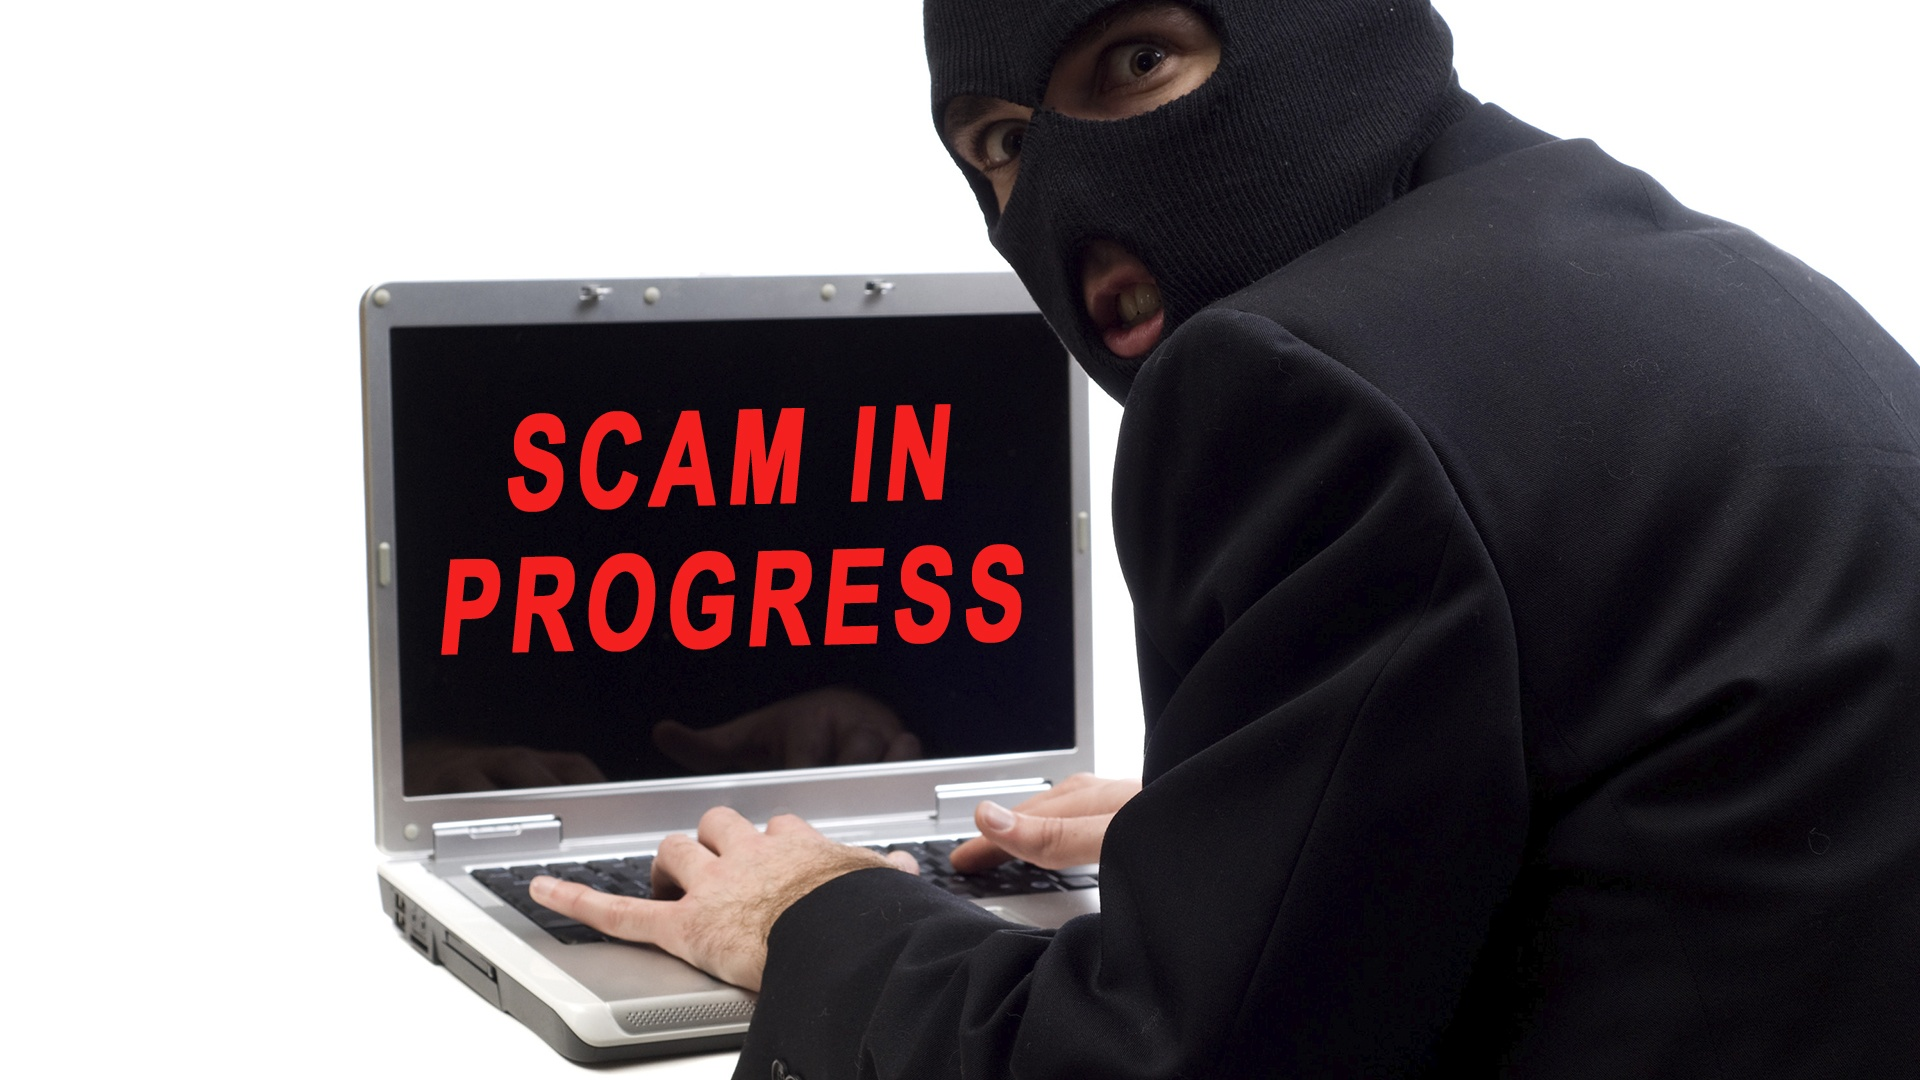 Online Scam? What to do